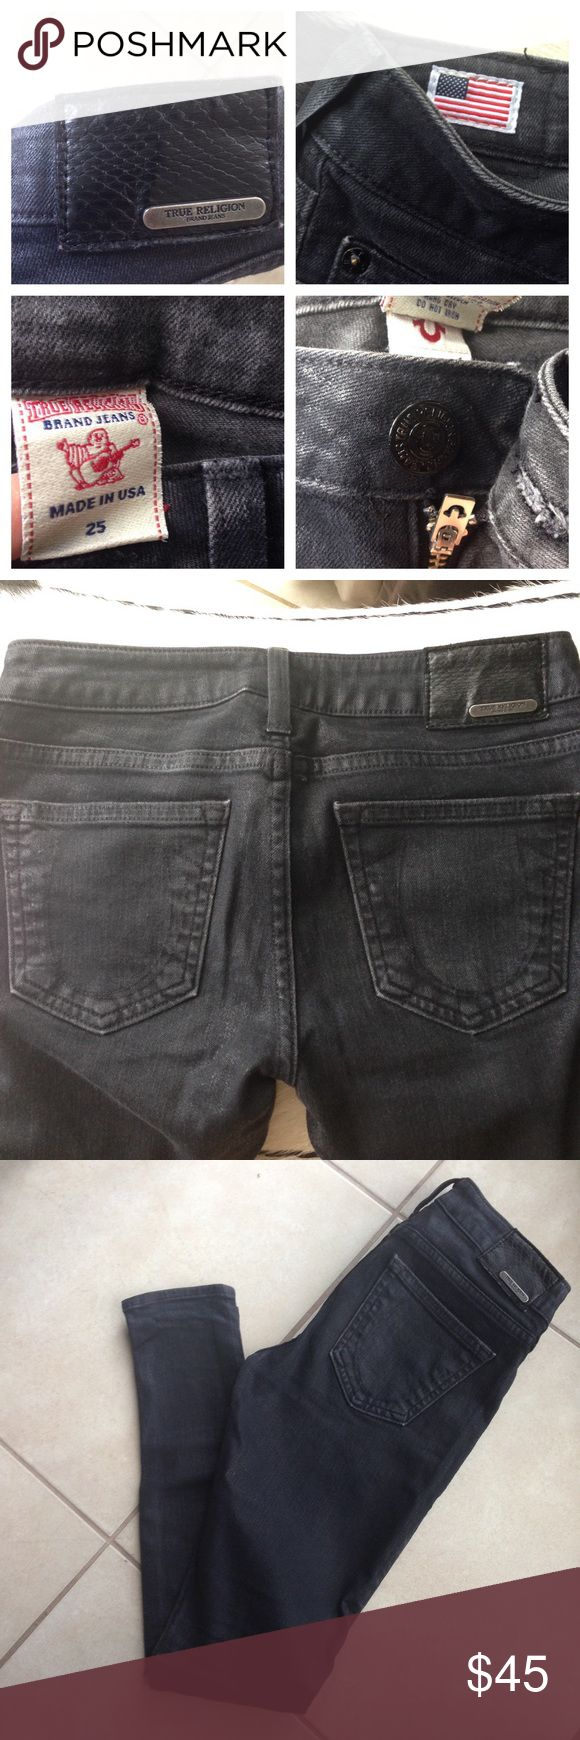 True religion jeans True religion jeans True Religion Jeans